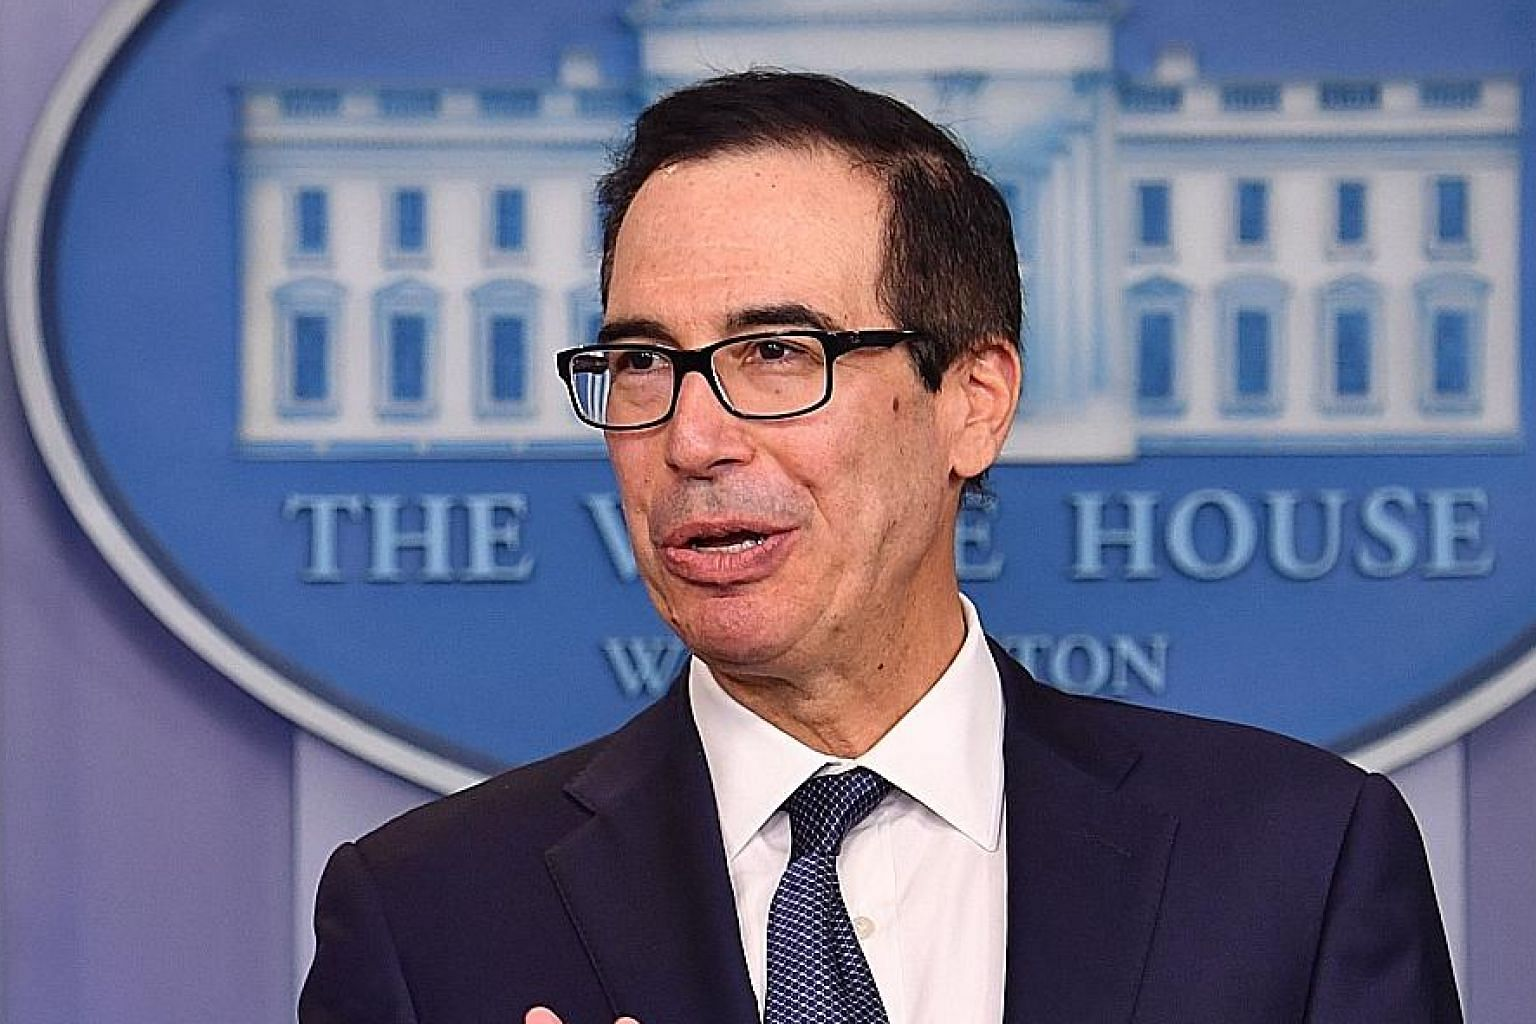 US Treasury Secretary Steven Mnuchin said US and Chinese negotiators are working on nailing down a Phase 1 trade deal text for their presidents to sign next month, adding that he was prepared to travel to Beijing for more meetings if necessary.